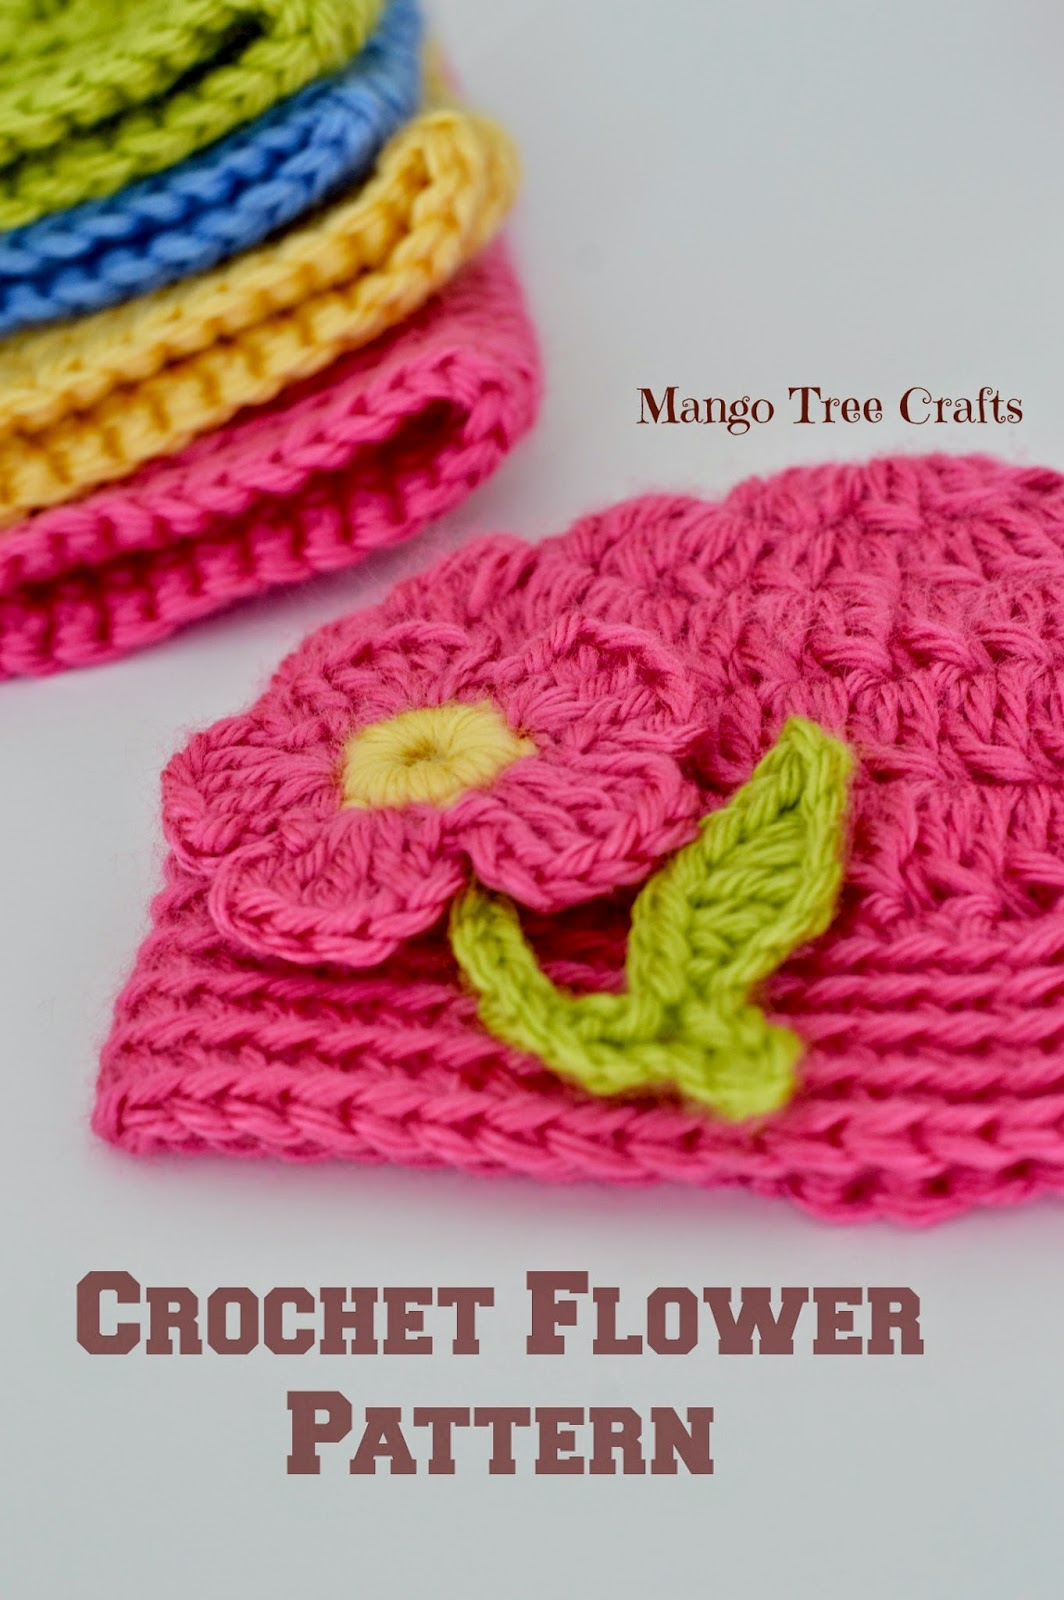 Mango Tree Crafts: Free Crochet Flower Applique Pattern